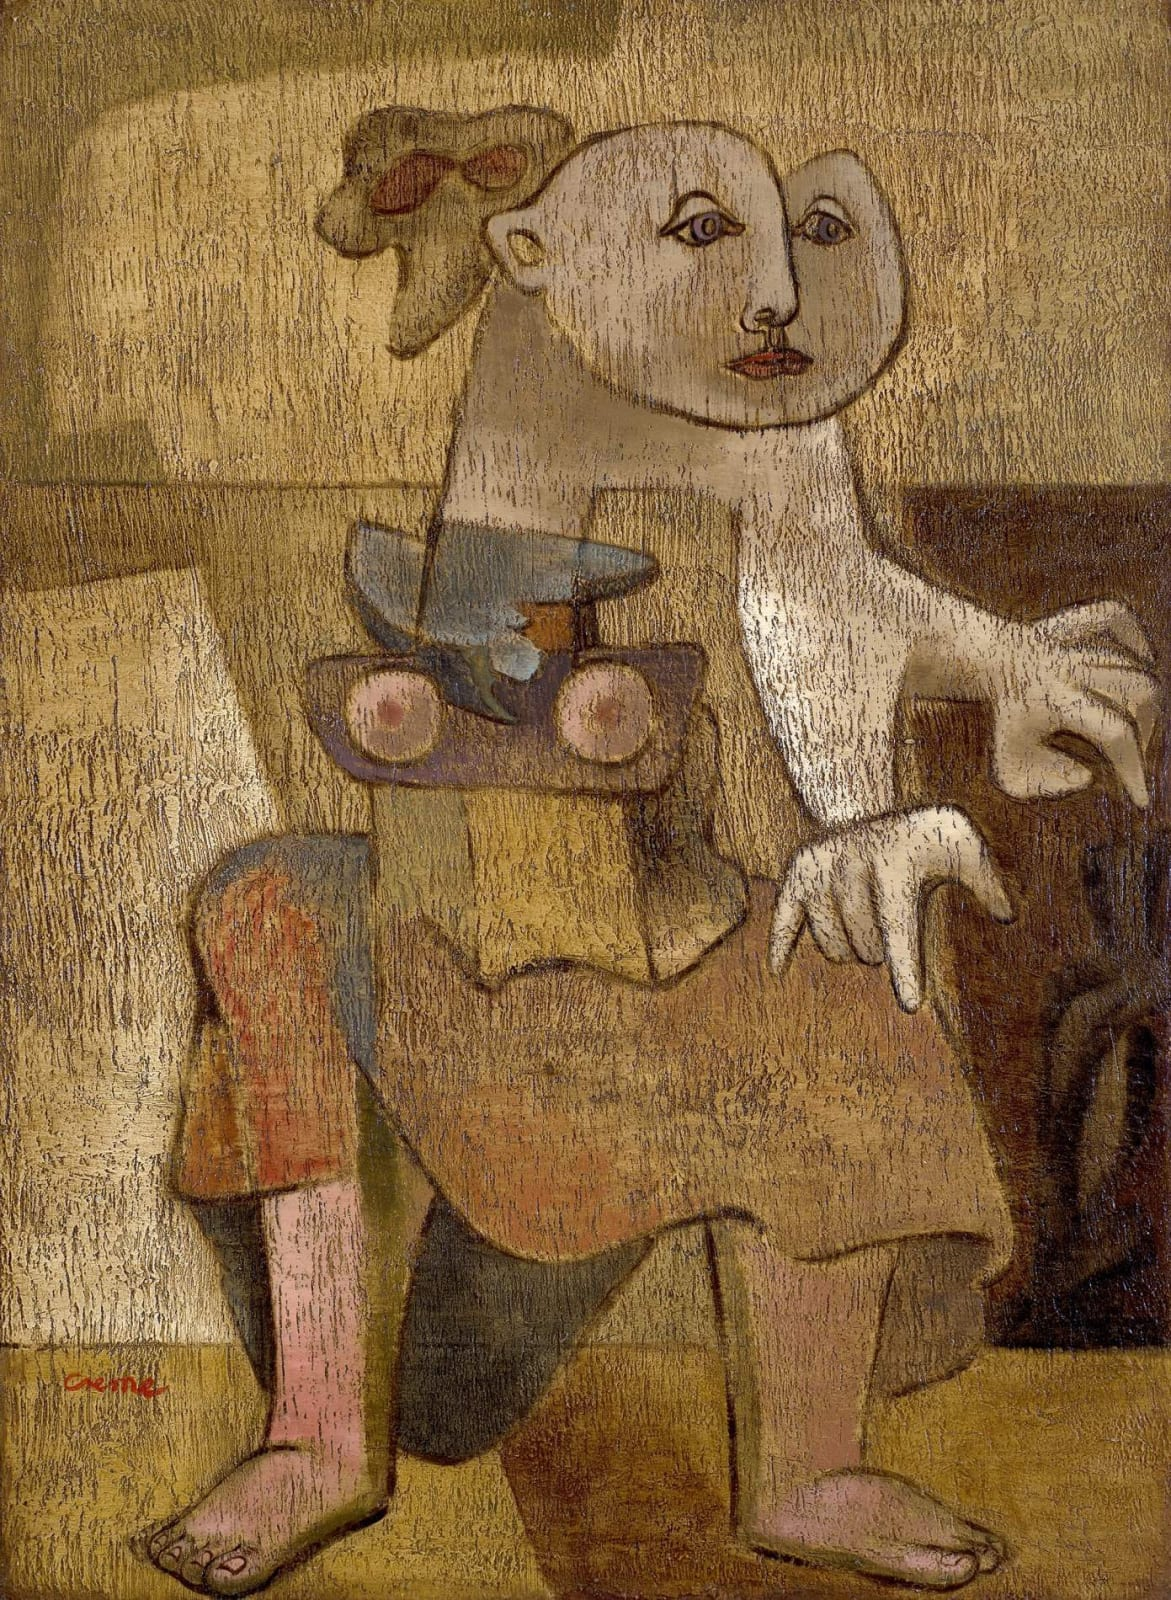 Benjamin Creme (1922–2016) The Anchorite 1943 Oil on board 77 x 57 cm Private Collection, courtesy of England & Co, London To see and discover more about this artist click here